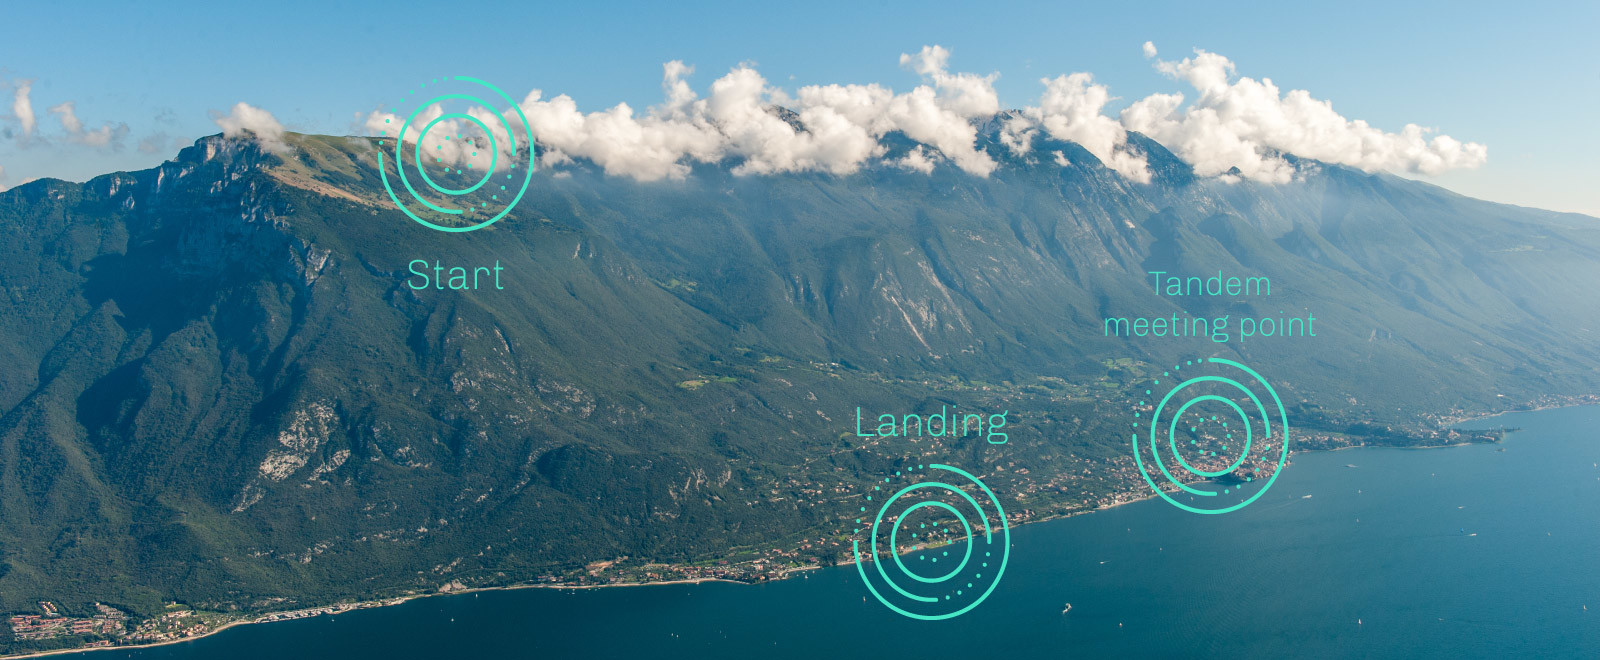 Tandem Paragliding Malcesine Meeting Point Lake Garda